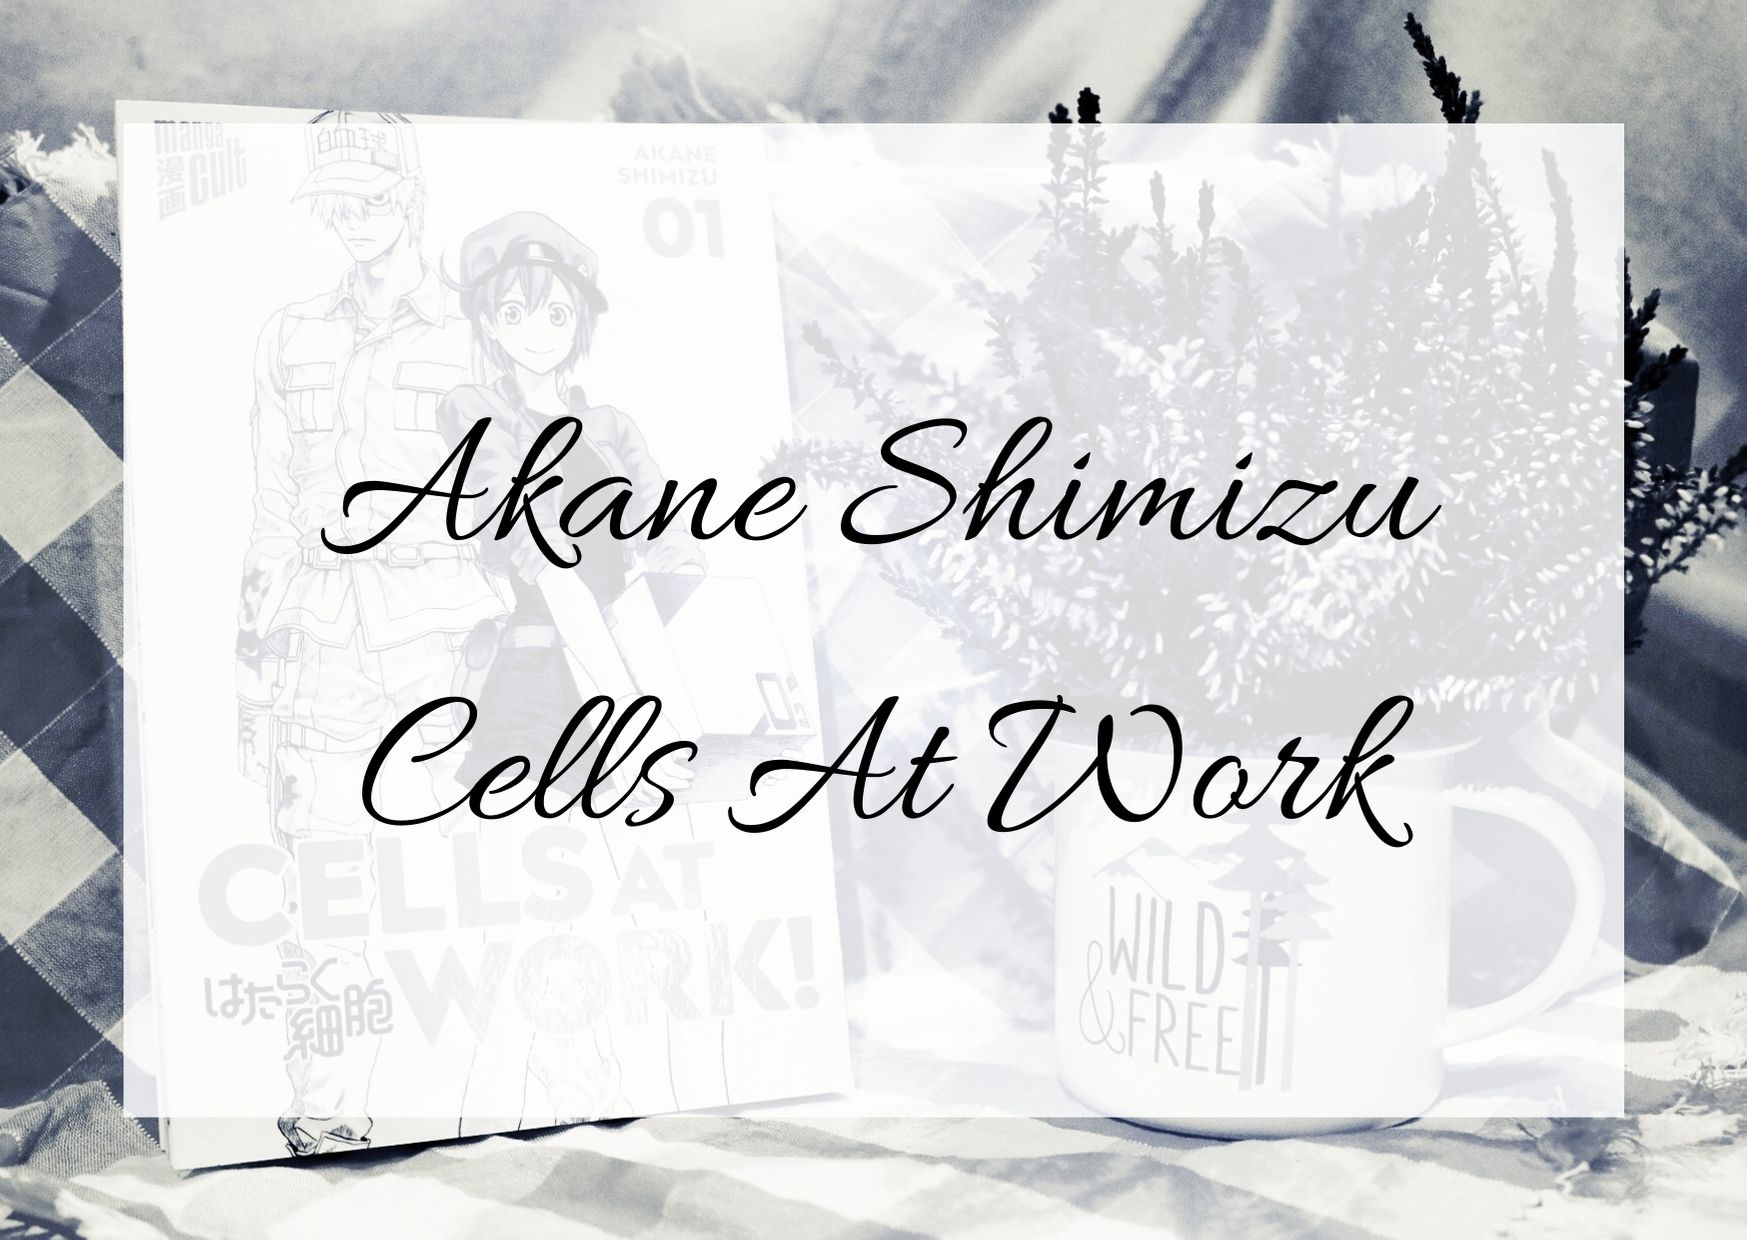 [Rezension] Akane Shimizu – Cells at Work 1